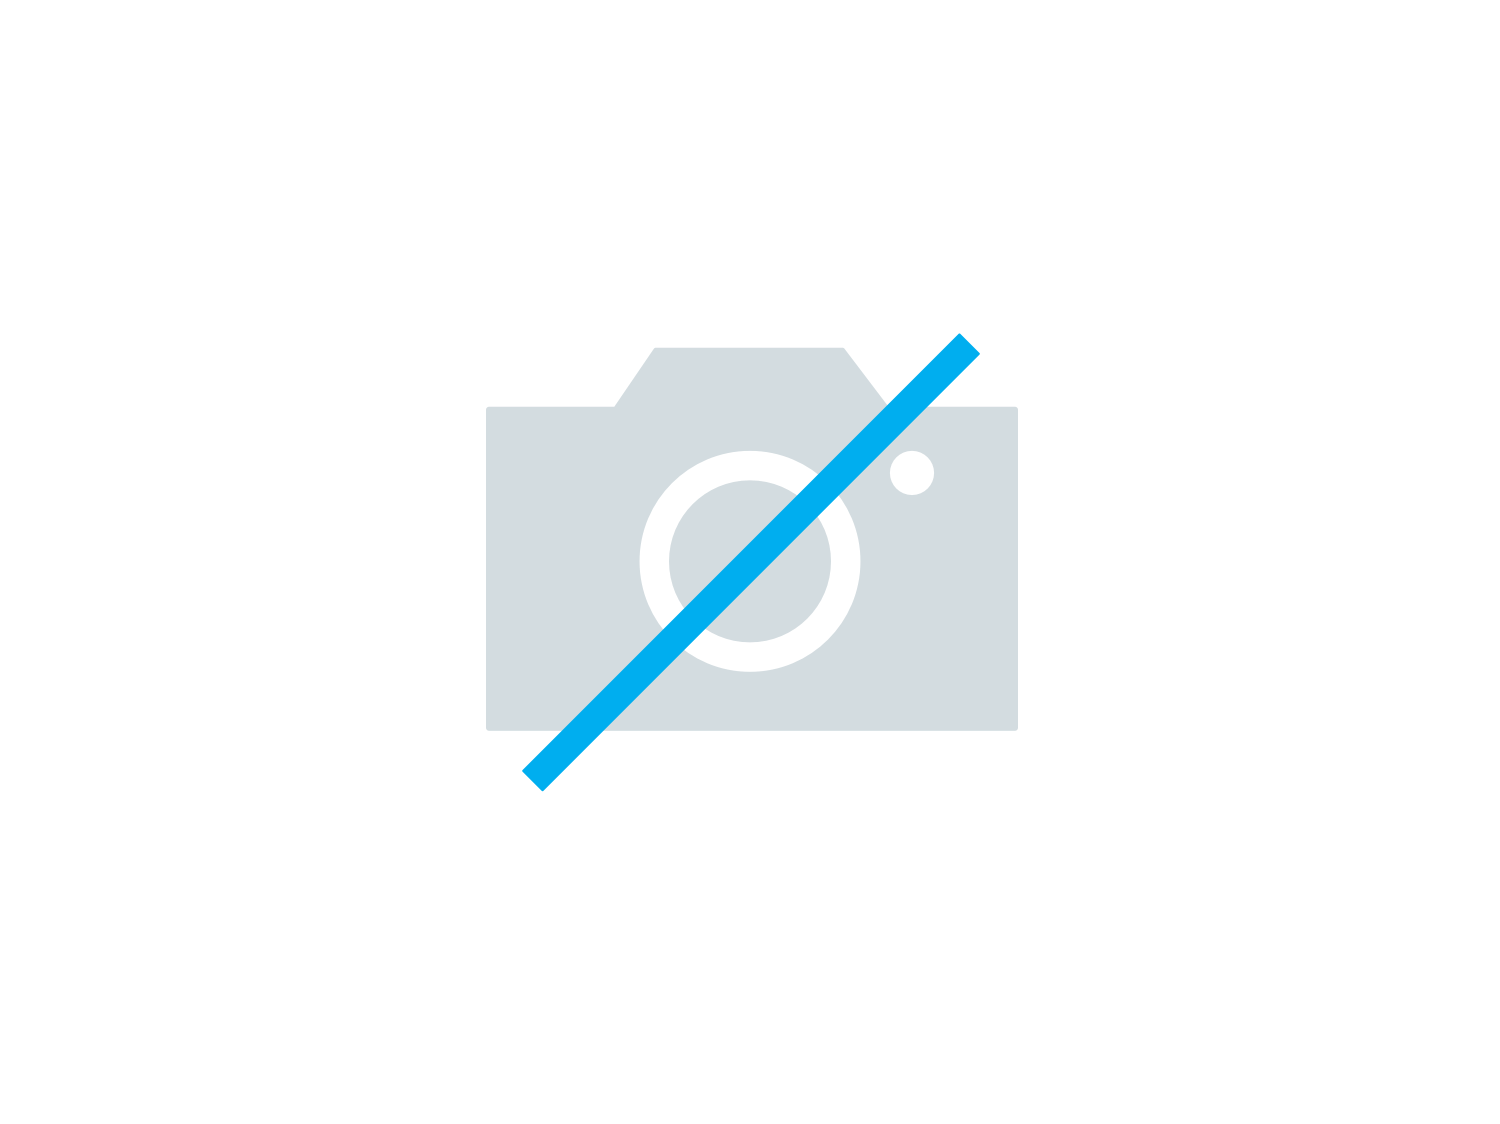 Wall ornament Zastron 74x74cm